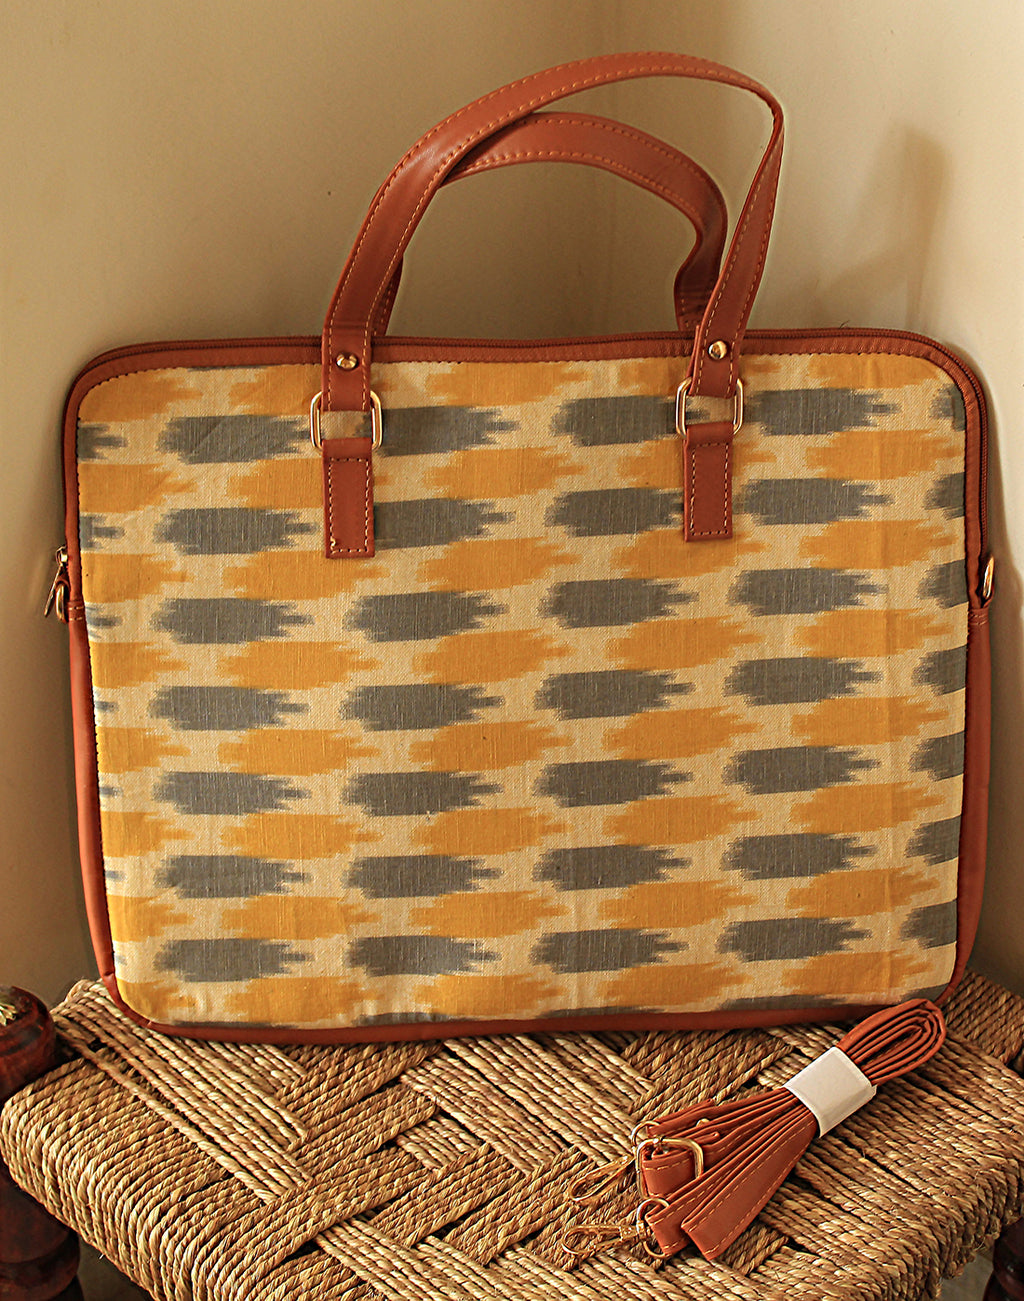 Yellow and Grey Handloom Ikkat Cotton Laptop Bag with Adjustable Belt